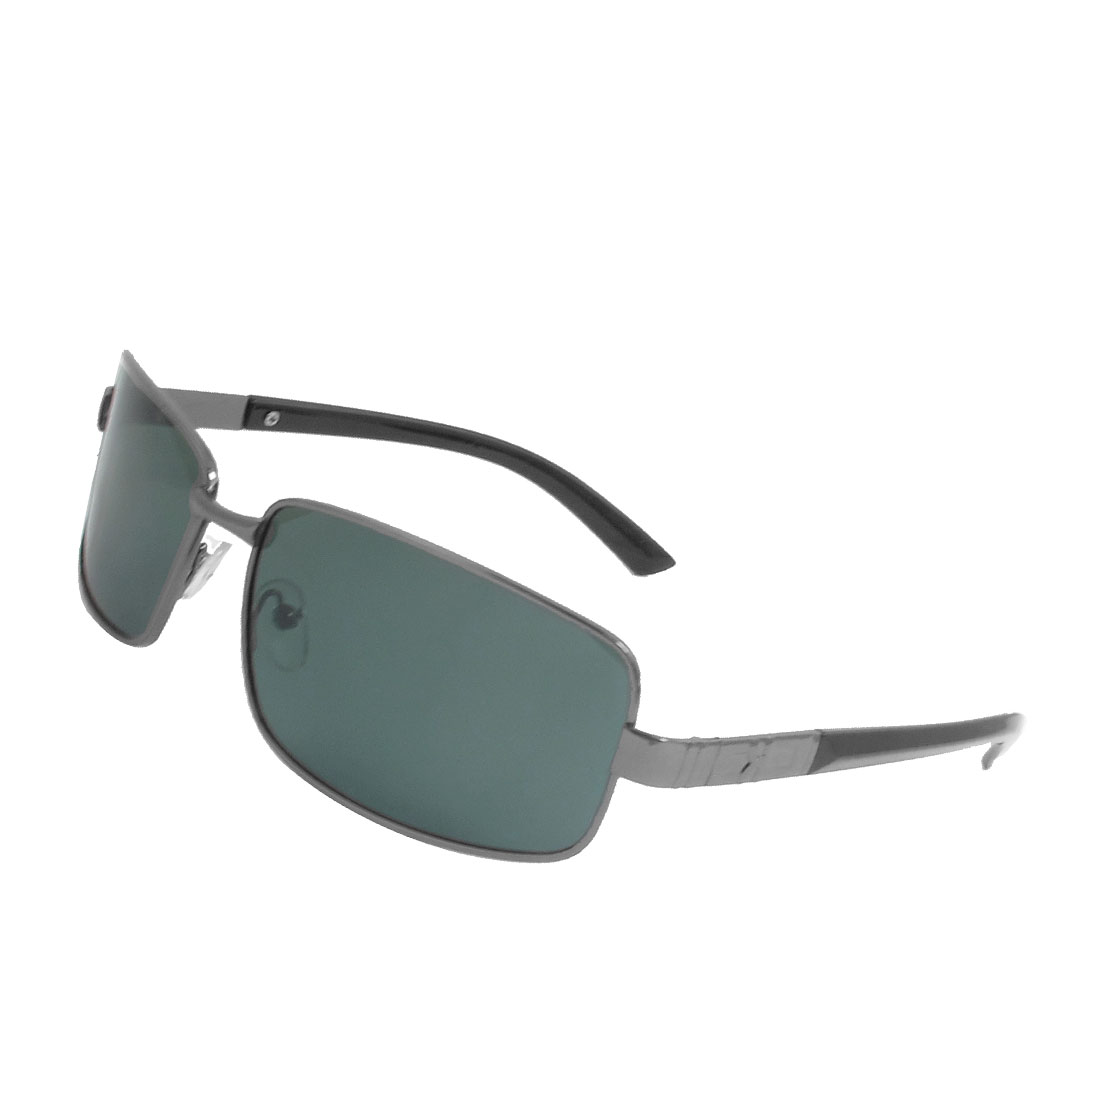 Men Dark Gray Plastic Arms Polarized Eyewear Sunglasses w Bag